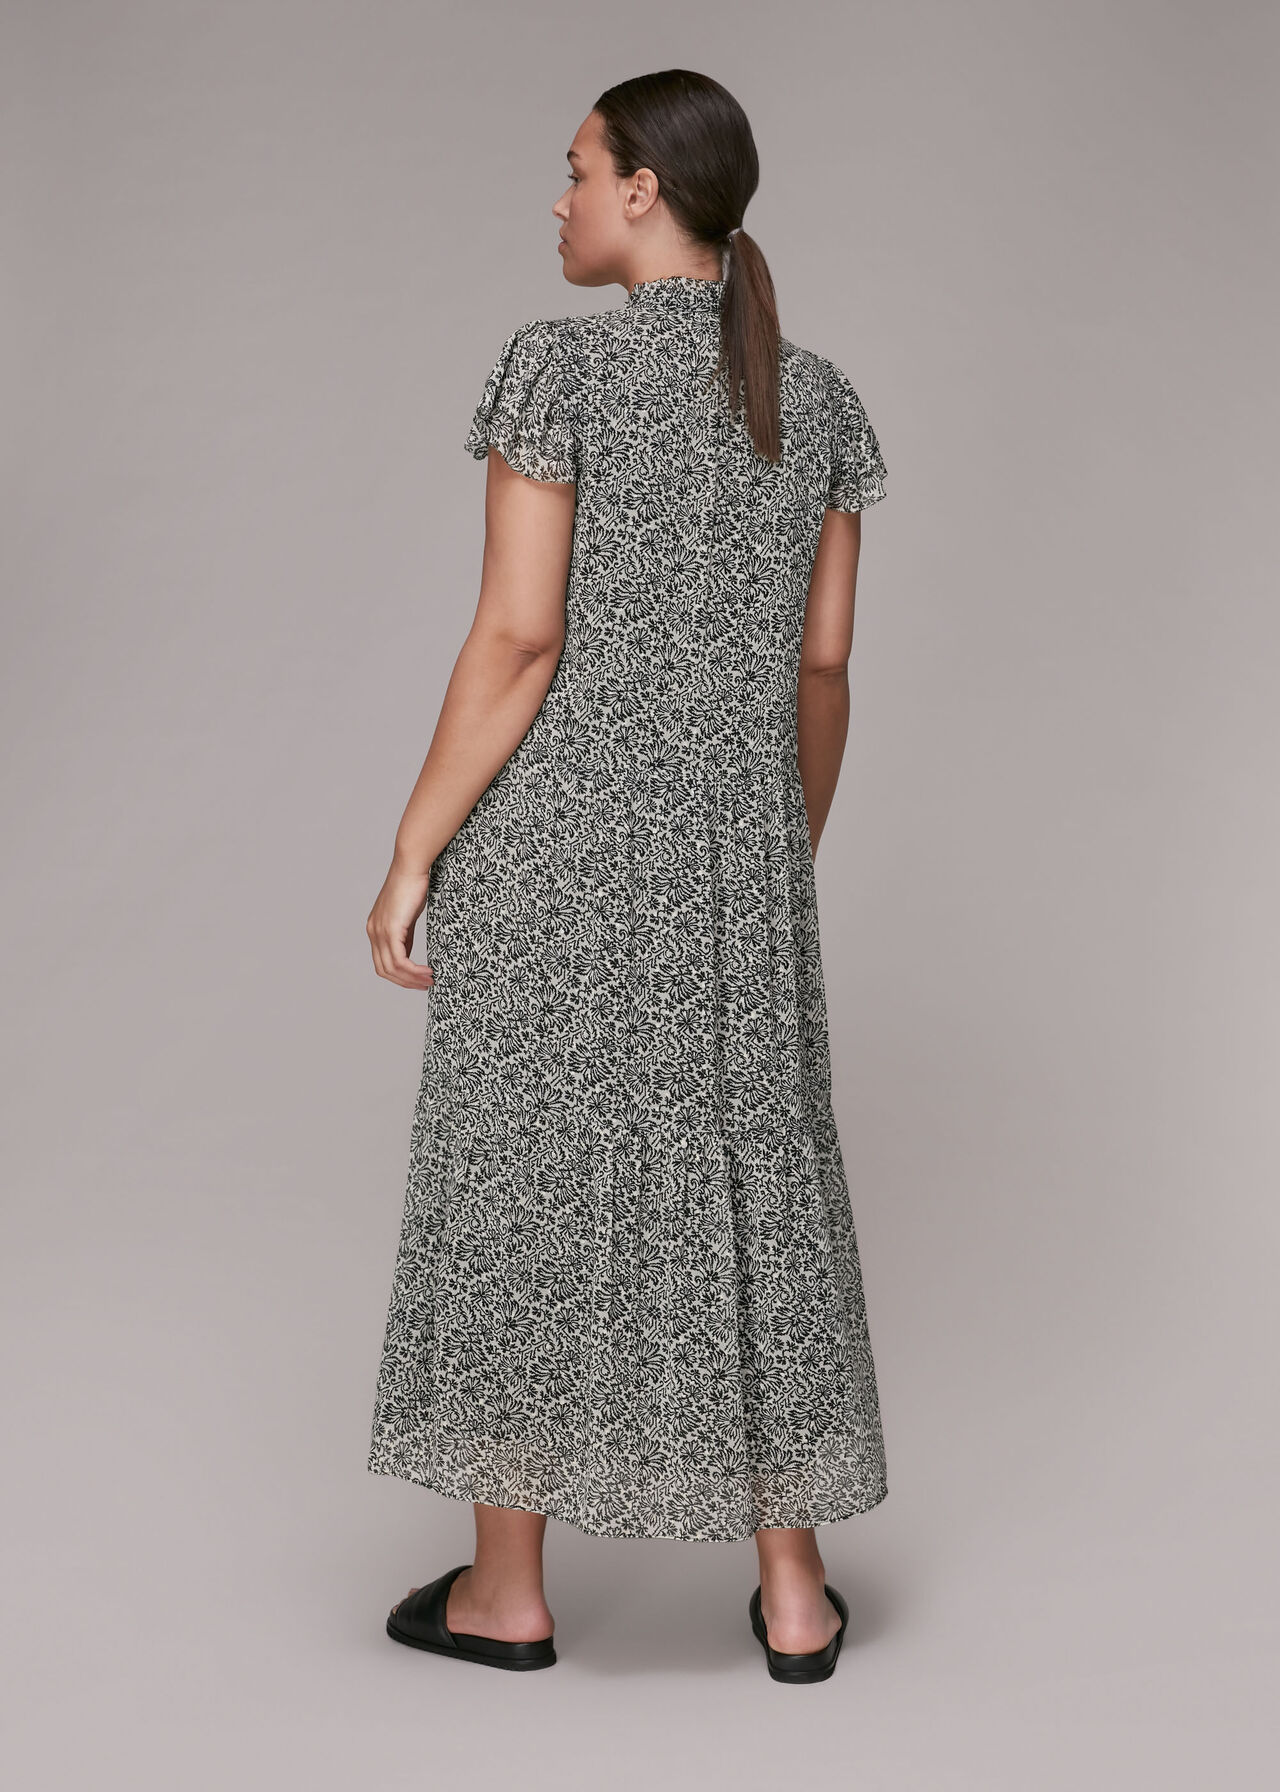 Indo Floral Print Tiered Dress